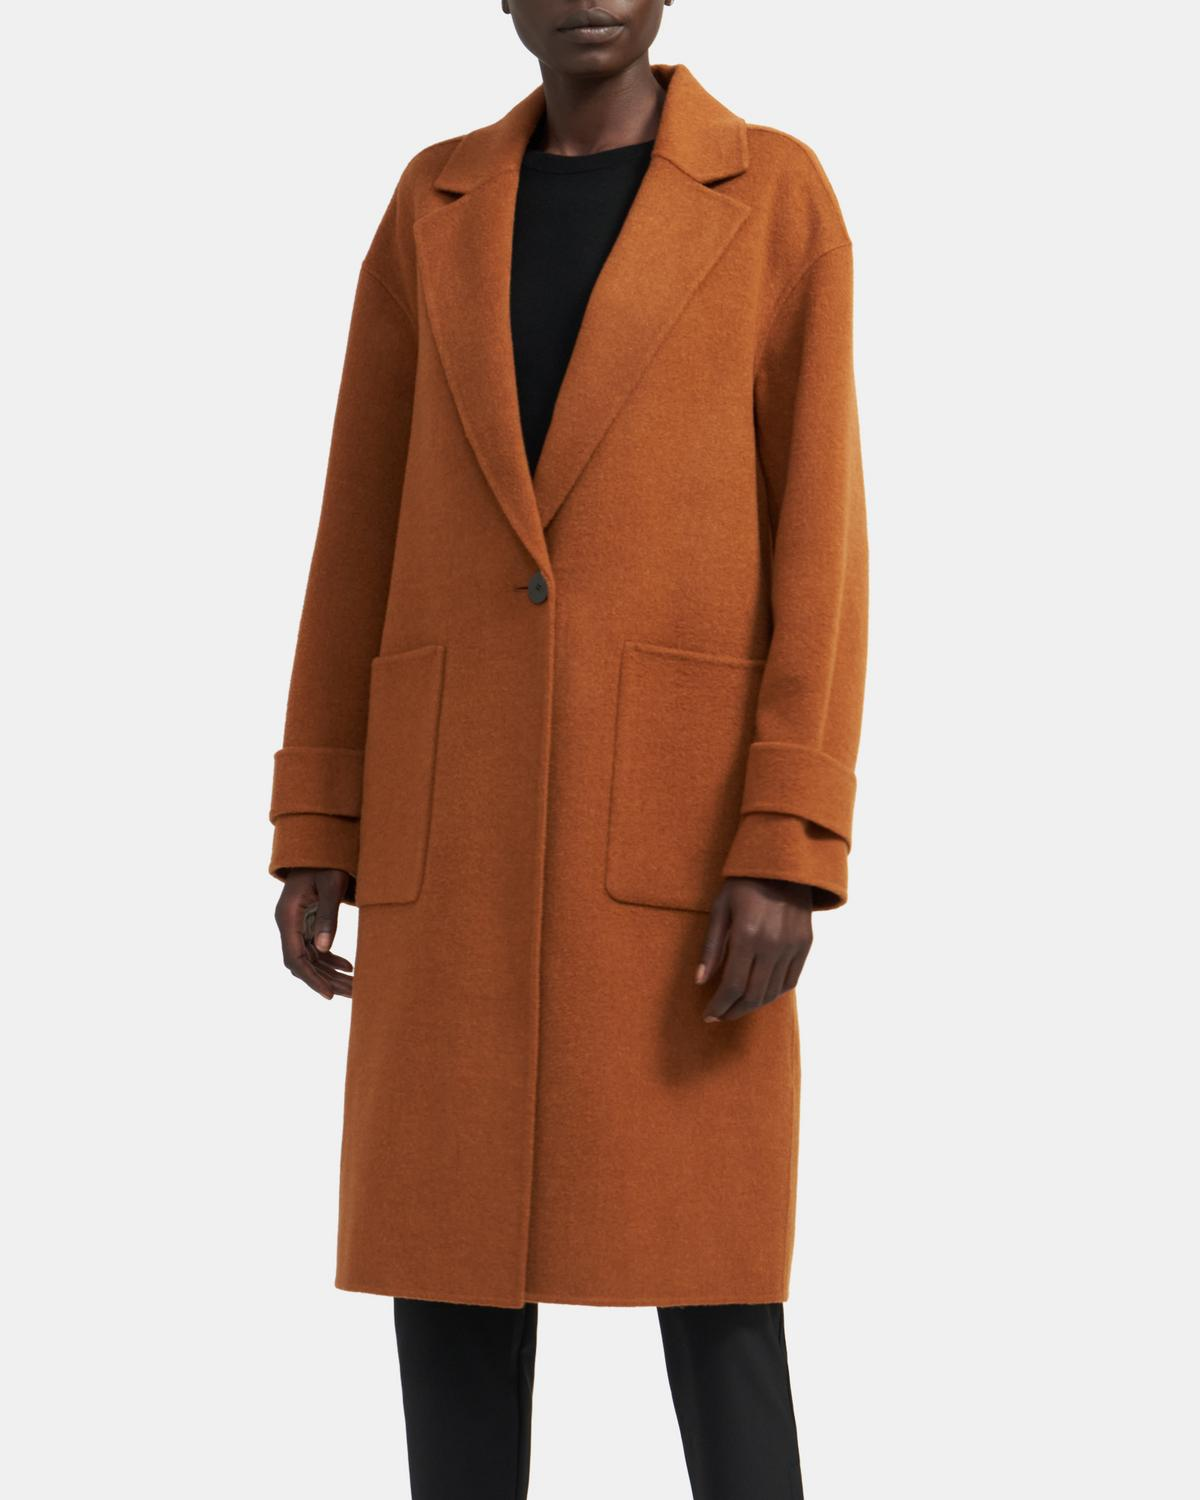 EASY ONE BUTTON COAT